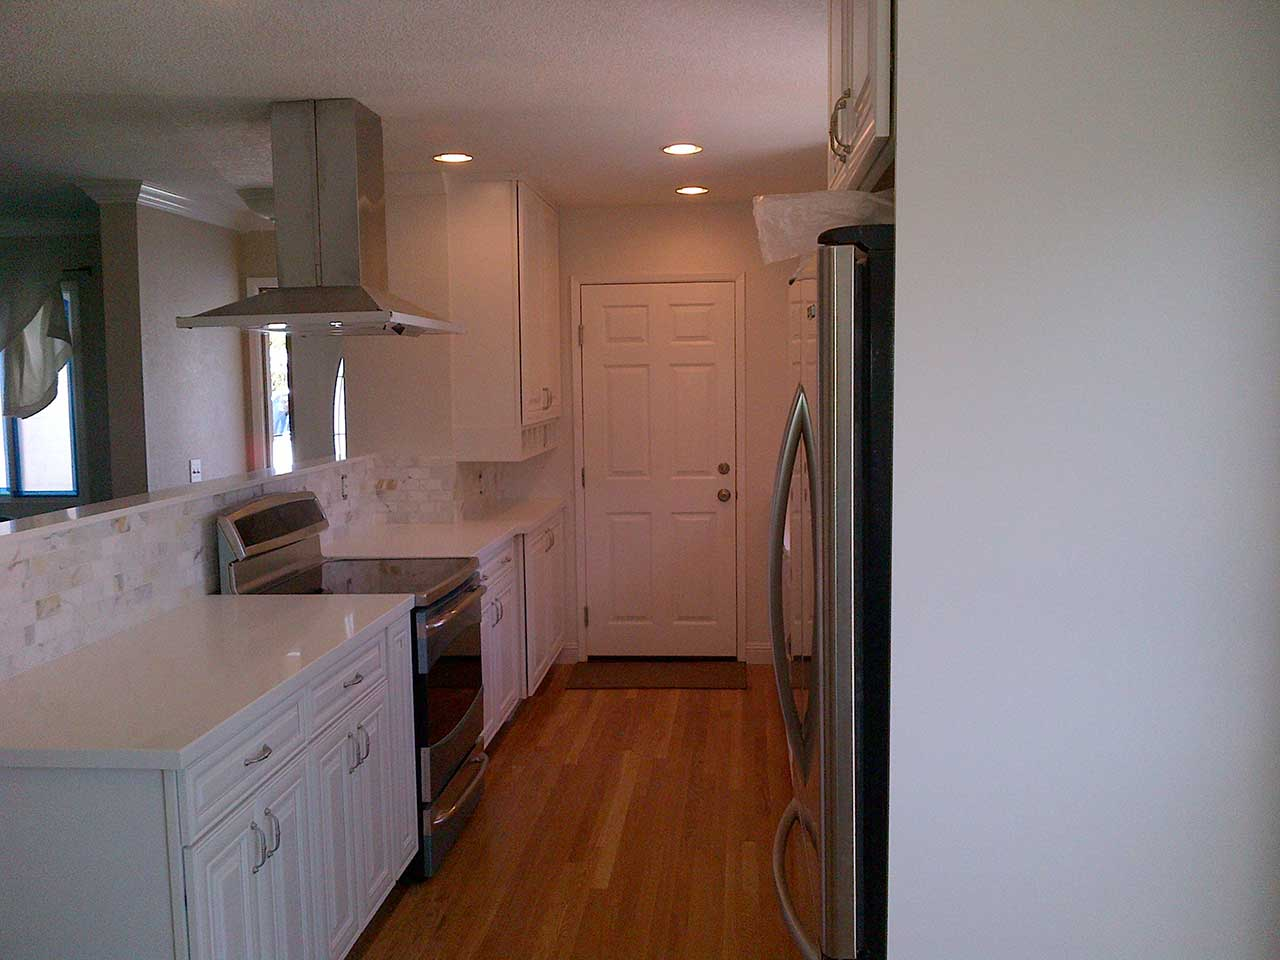 HOWE-kitchen-with-white-cabs-and-new-wood-floor-#2-1280x960